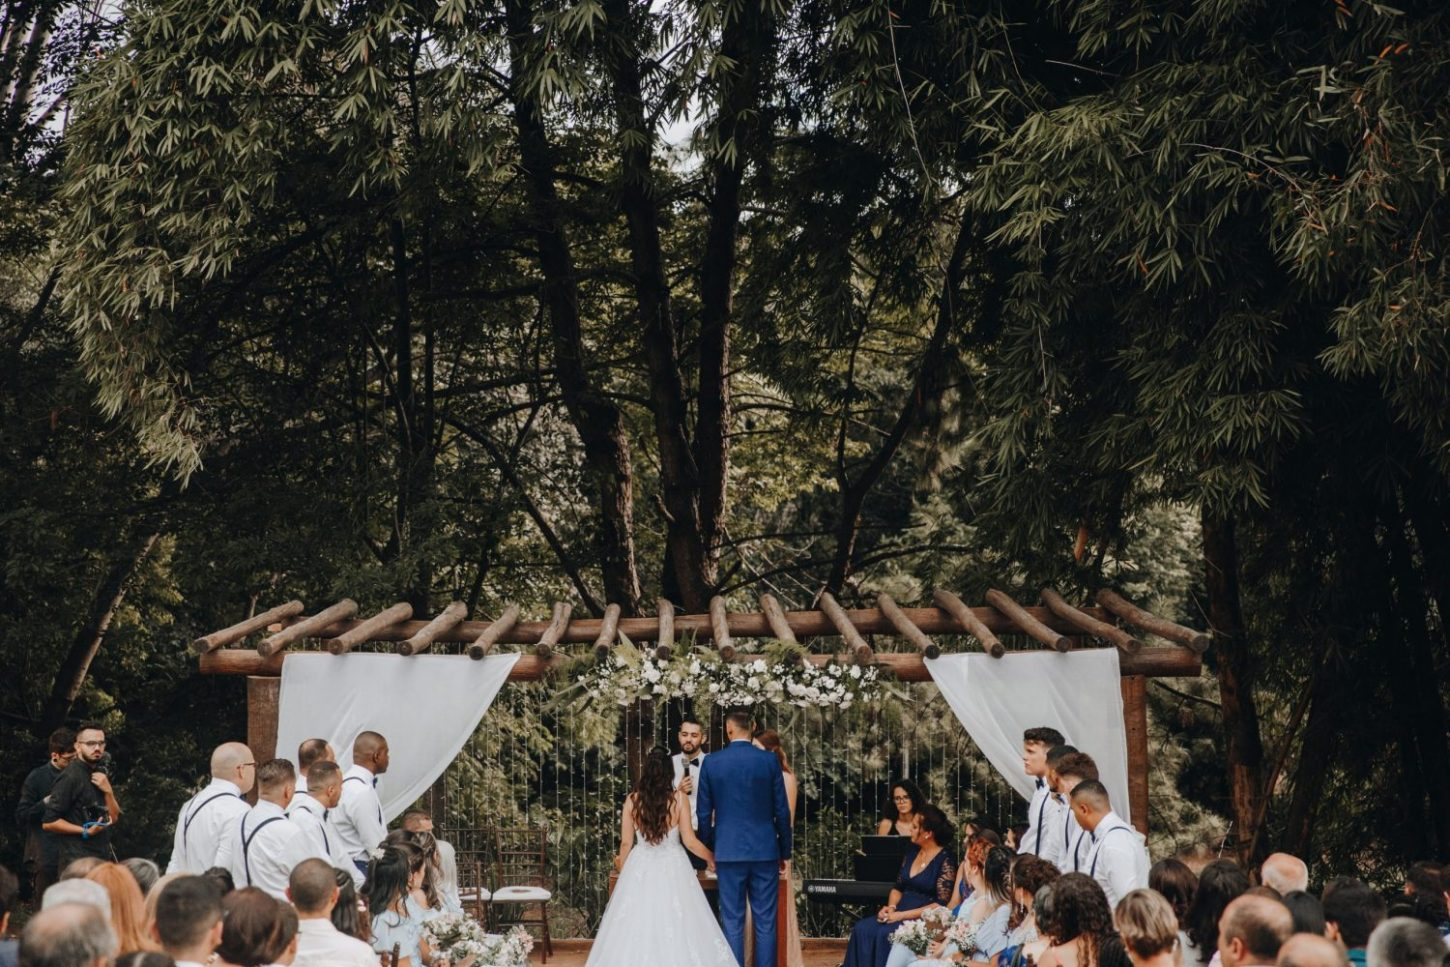 Does a Wedding Photographer Need to Visit My Venue Beforehand?